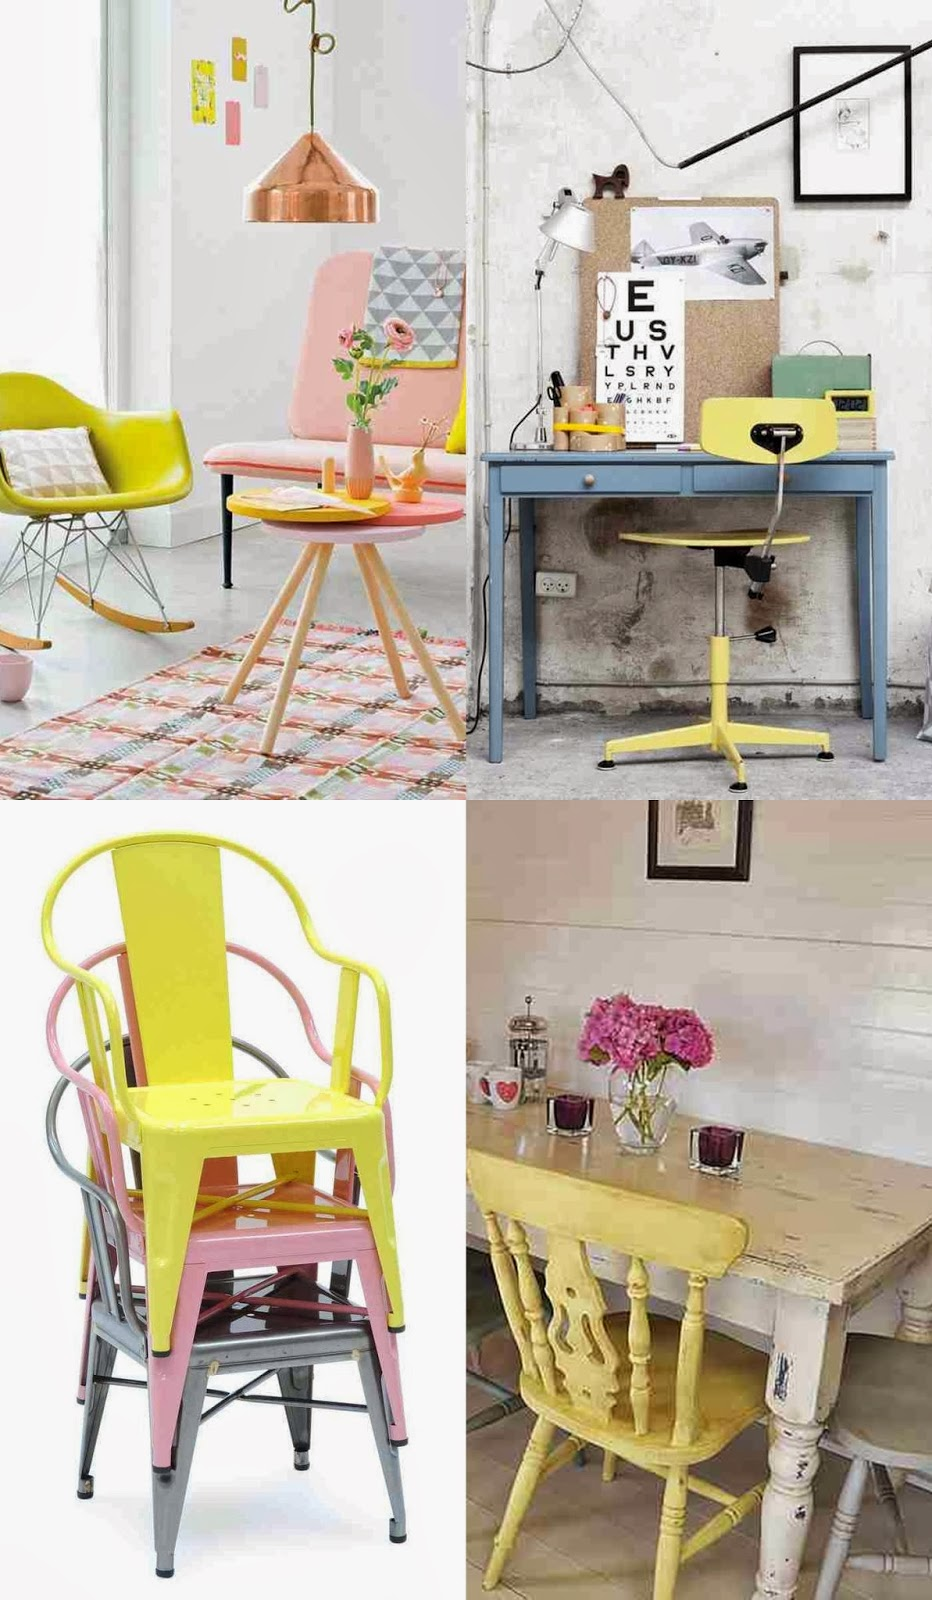 Pastel tolix, pastel yellow chairs, yellow rocker eames